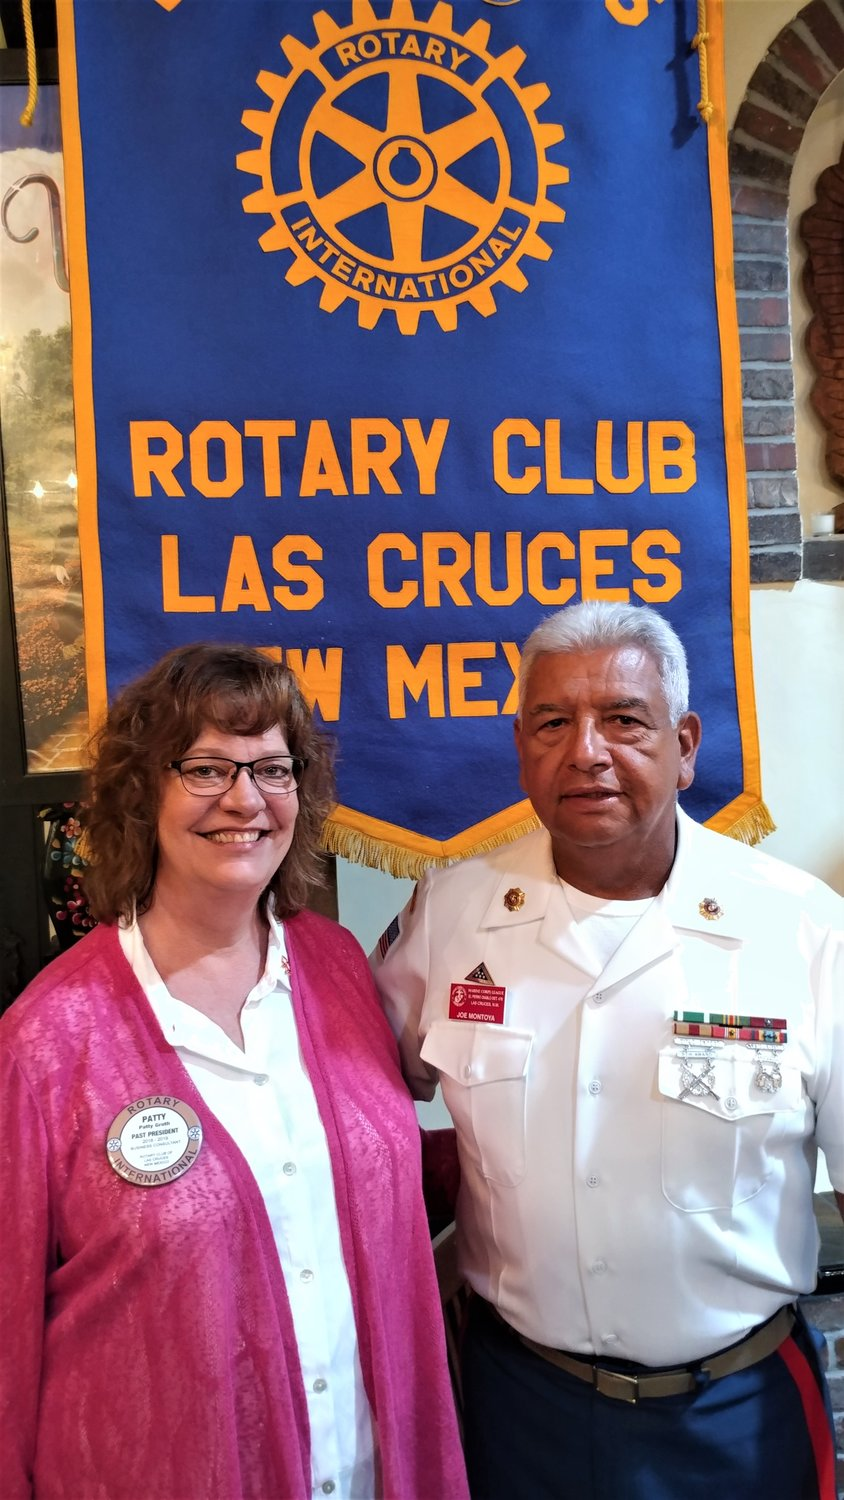 U.S. Marine Corps Reserves Toys for Tots of Doña Ana County Coordinator Patty Groth and Assistant Coordinator Joe Montoya, a retired Marine and the face of Toys for Tots, at the Oct. 2 meeting of the Las Cruces Rotary Club.